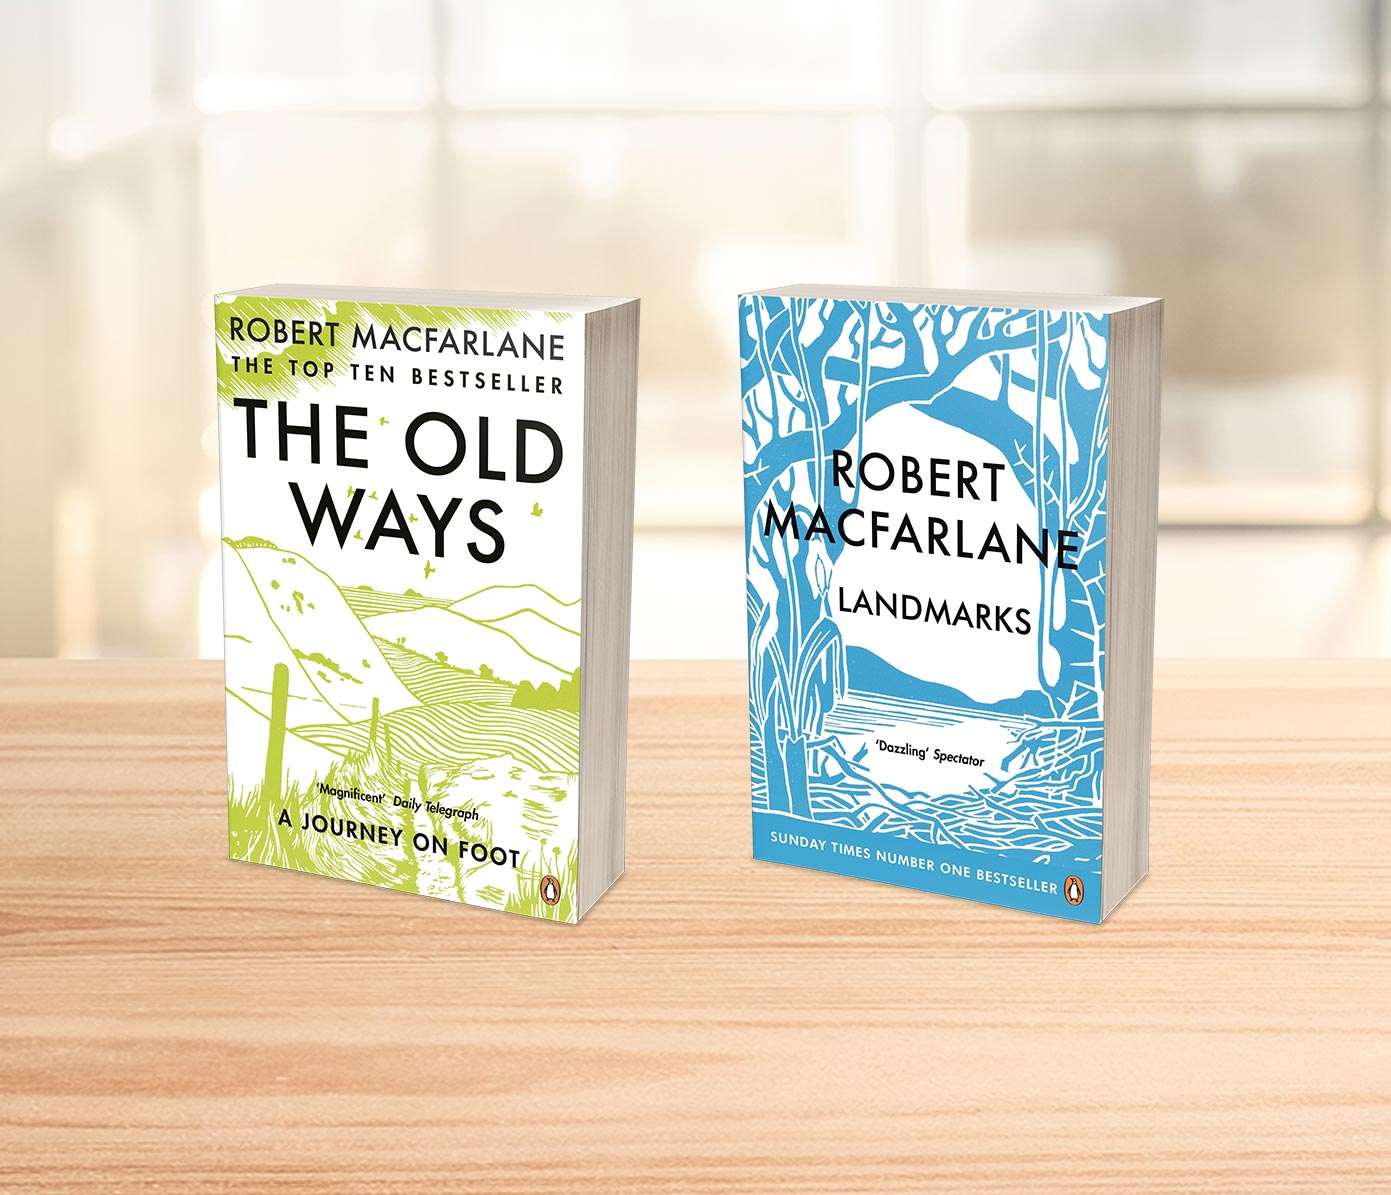 Robert MacFarlane: Landmarks & The Old Ways (SN01A)